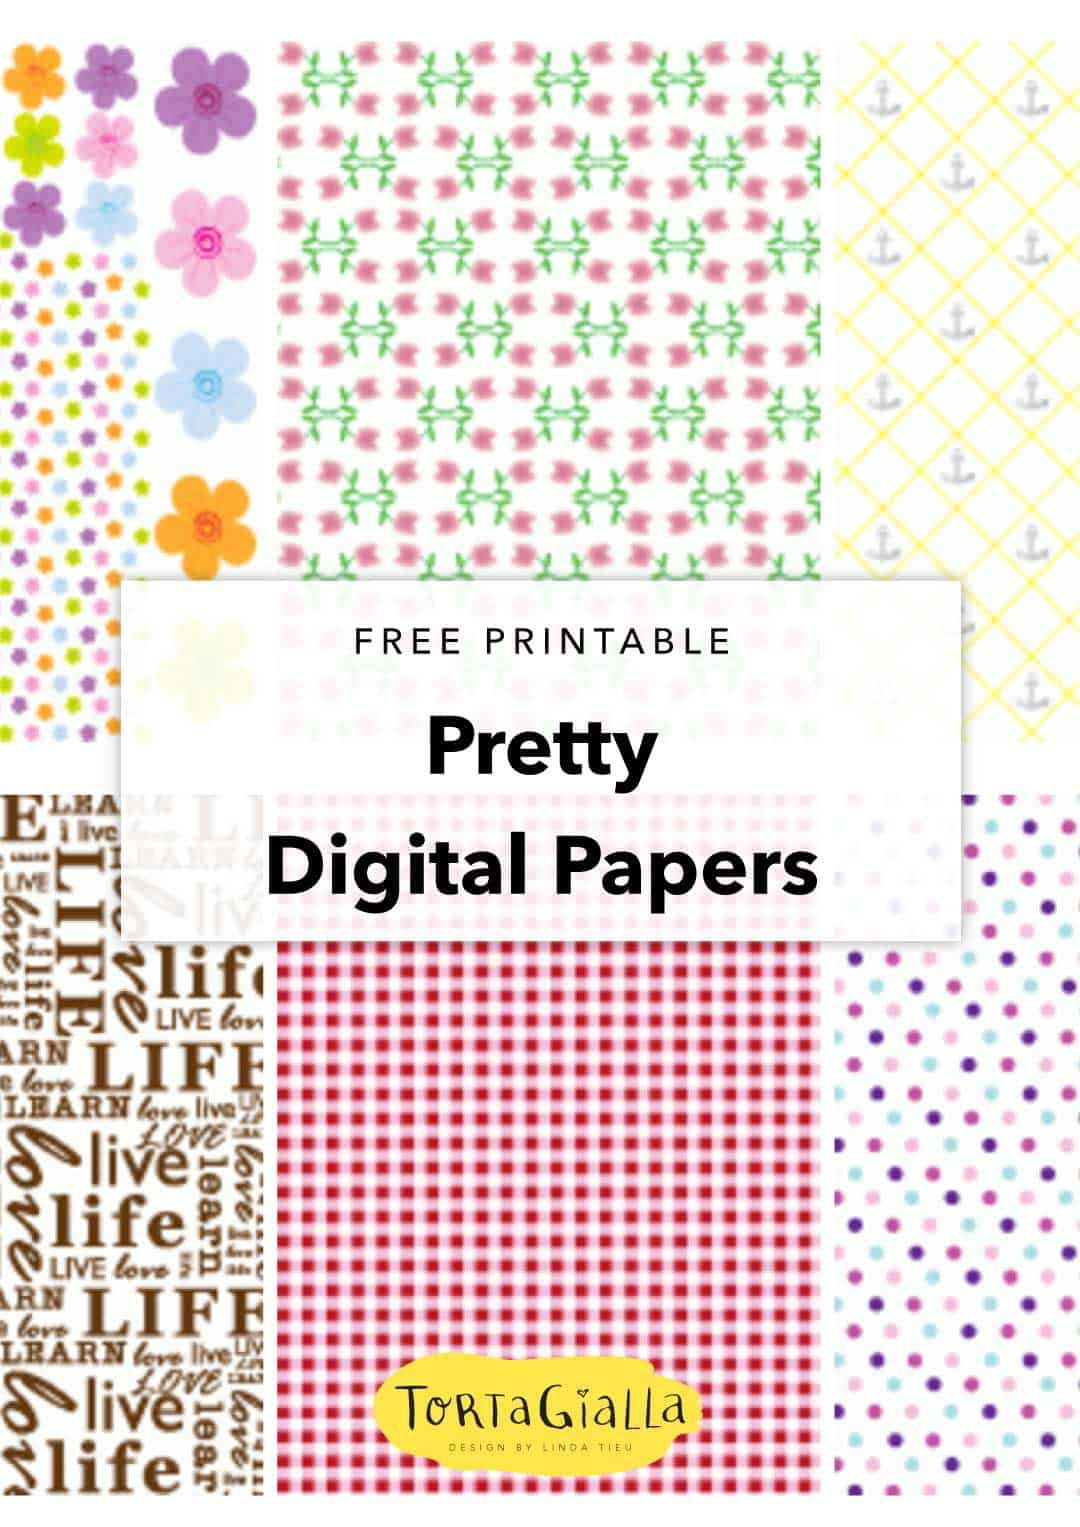 free printable papers preview